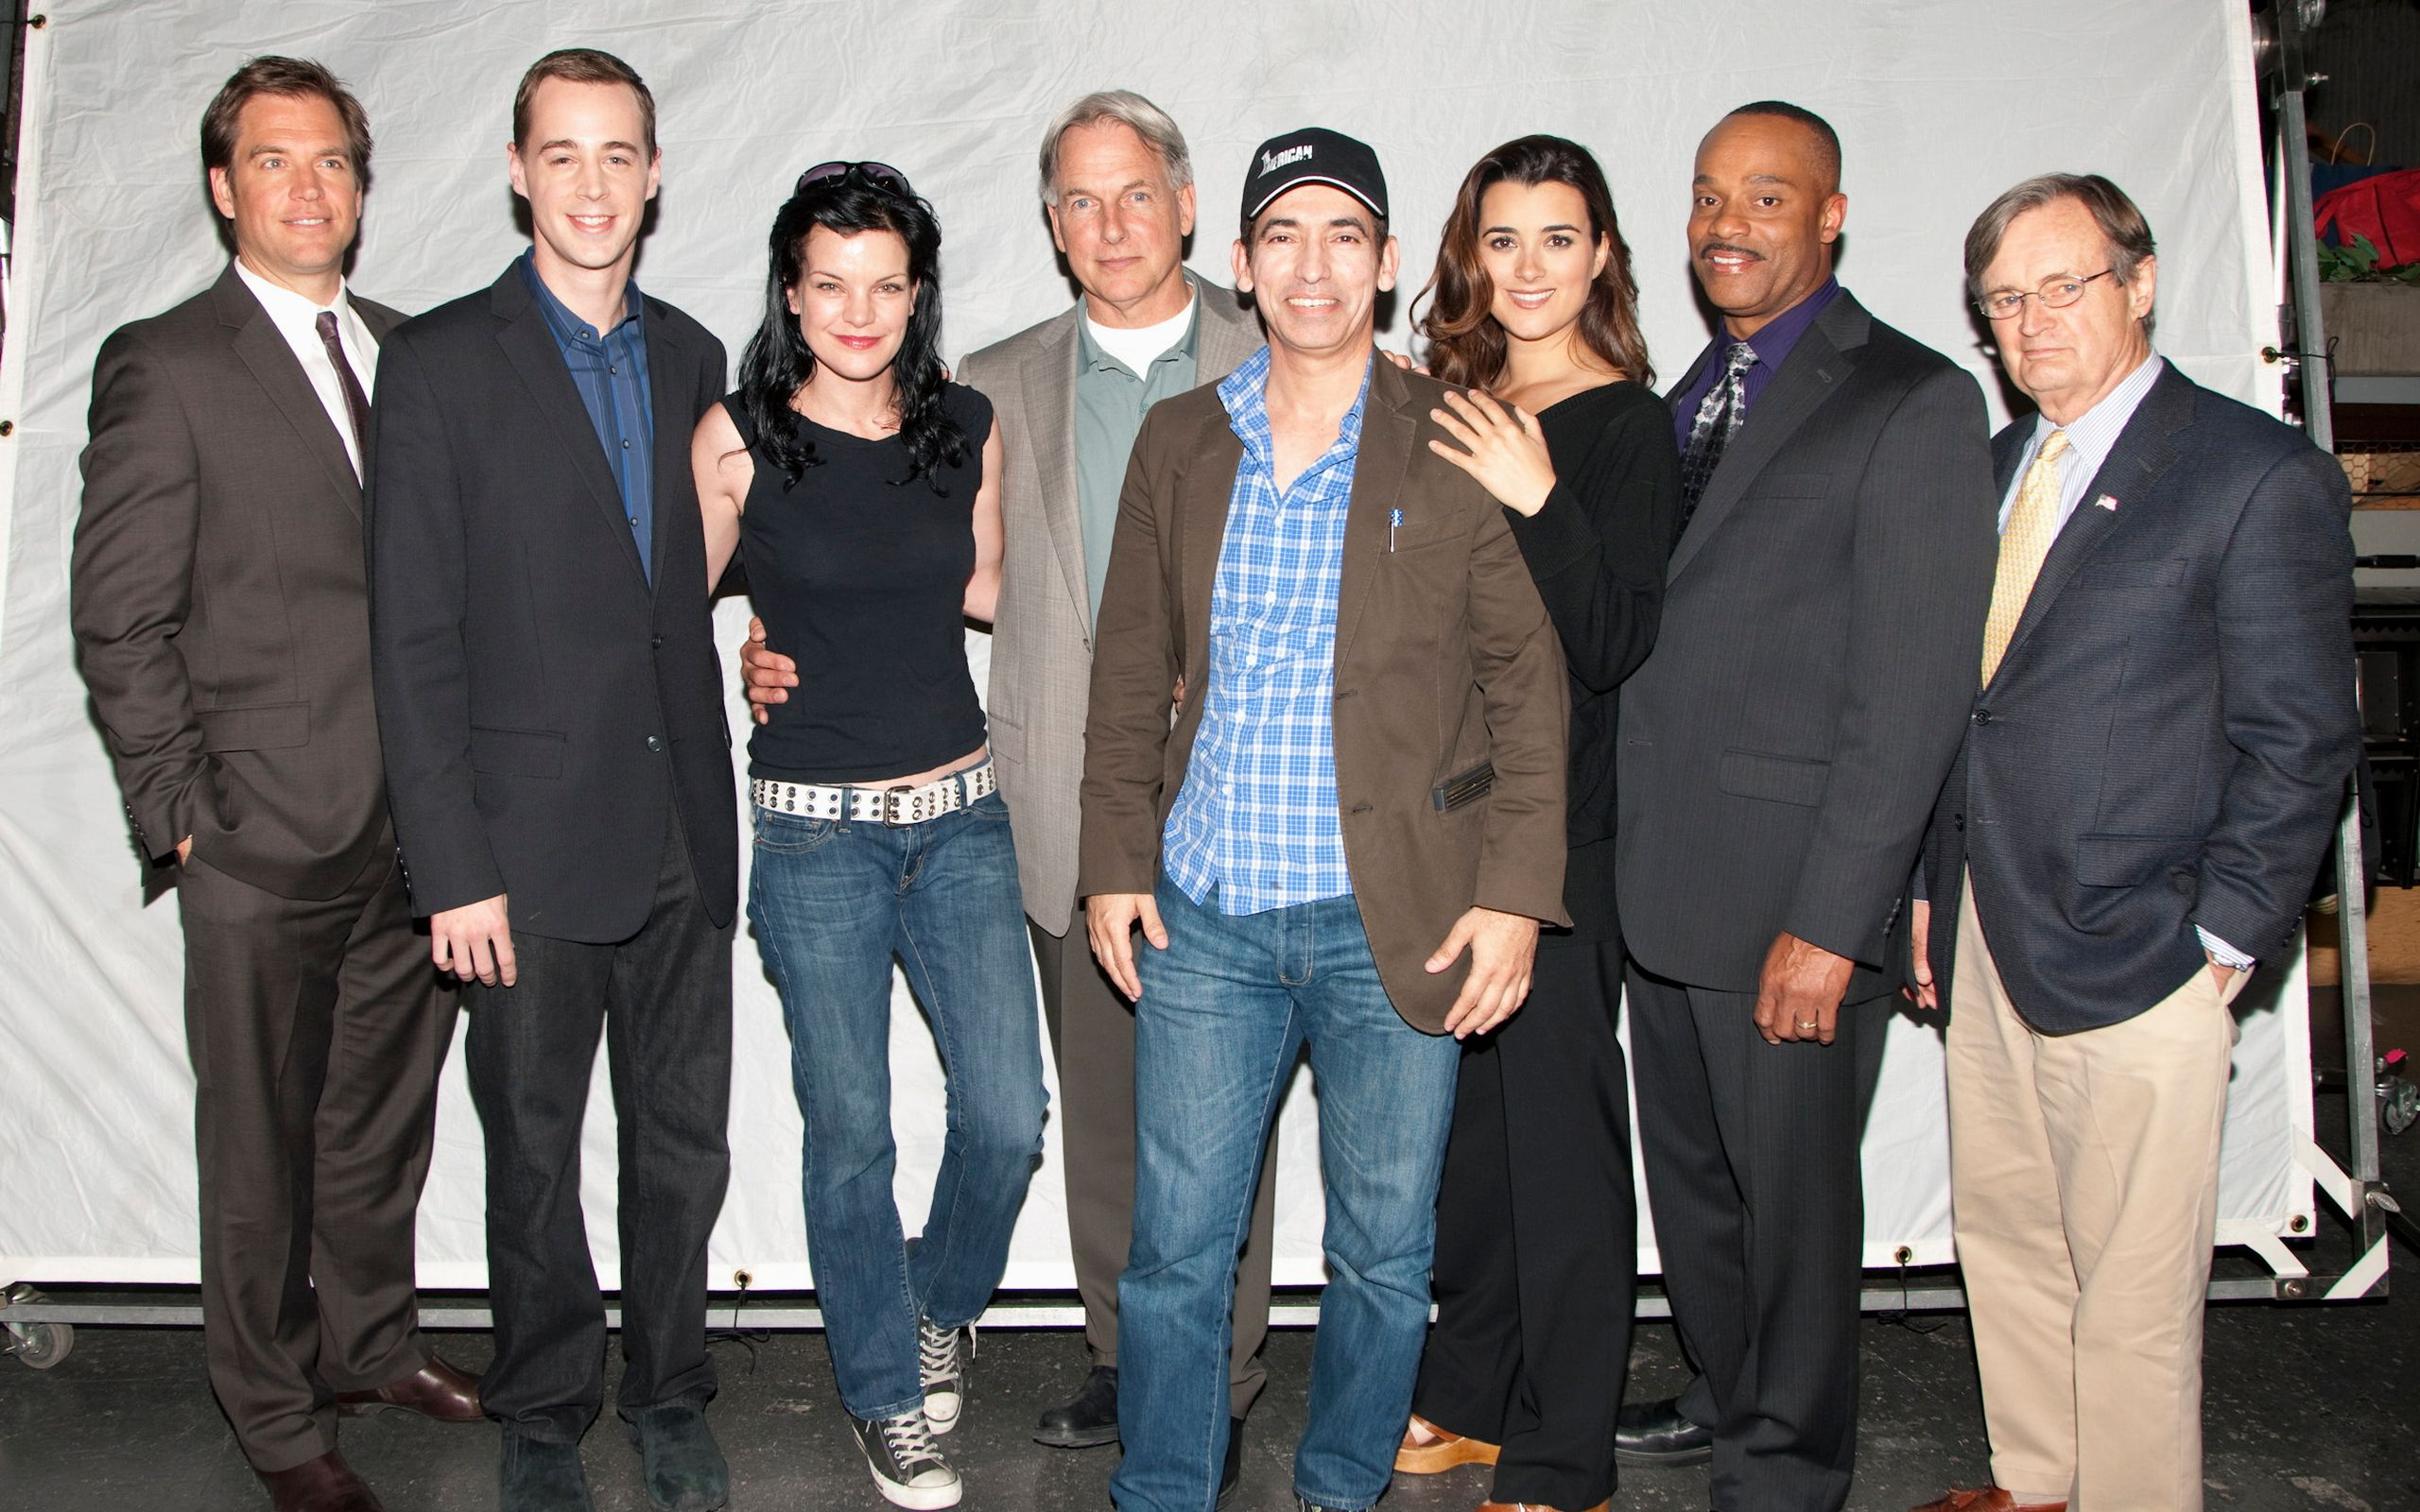 2560x1600 NCIS Wallpapers and Background Images - stmed.net